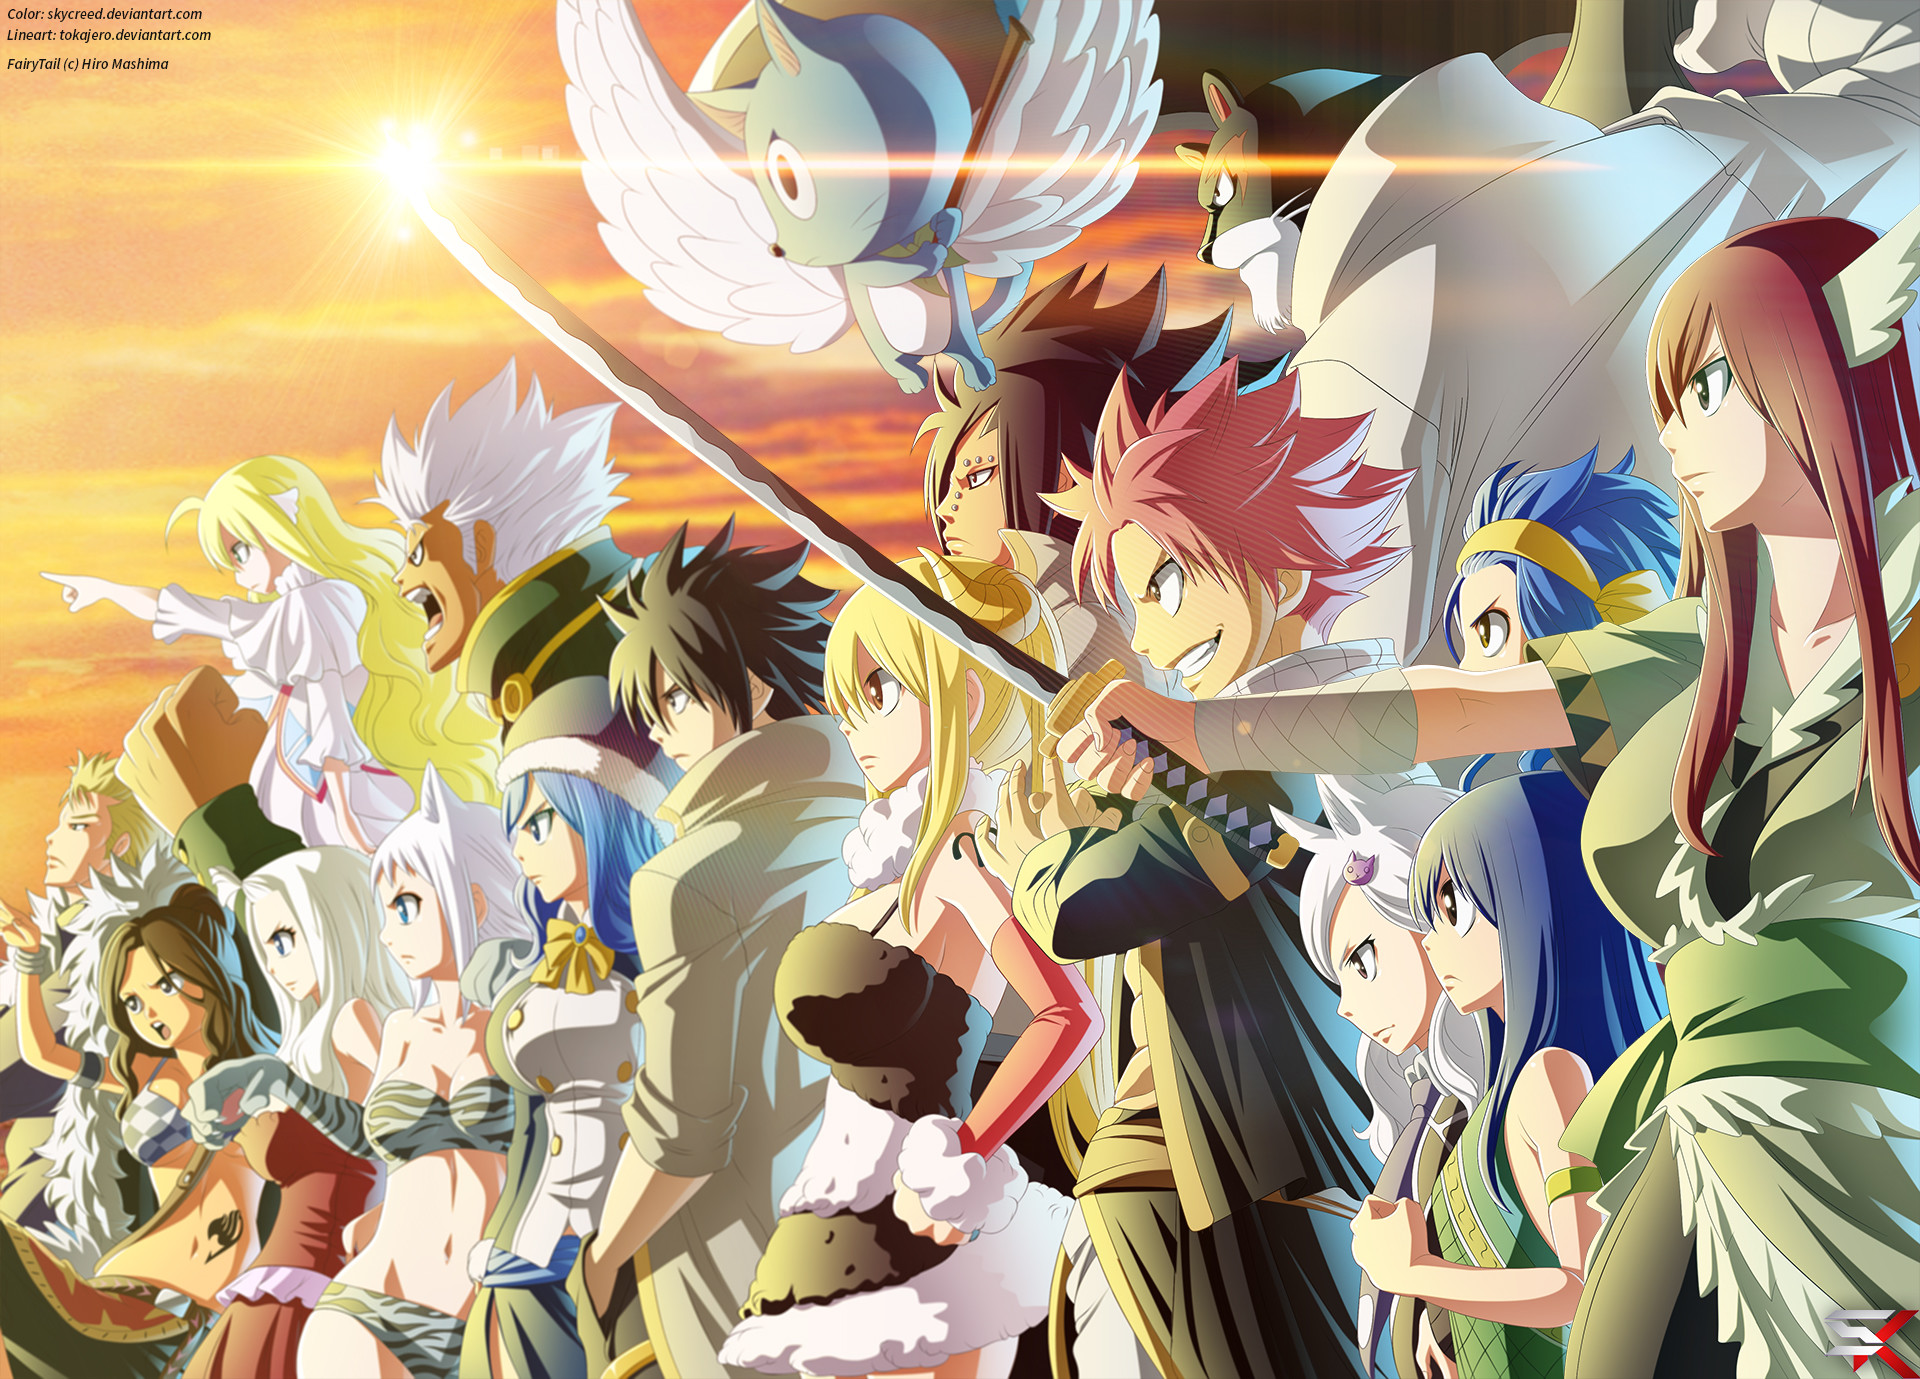 Fairy Tail Guild Wallpaper Hd Laxus Dreyar Wallpaper...